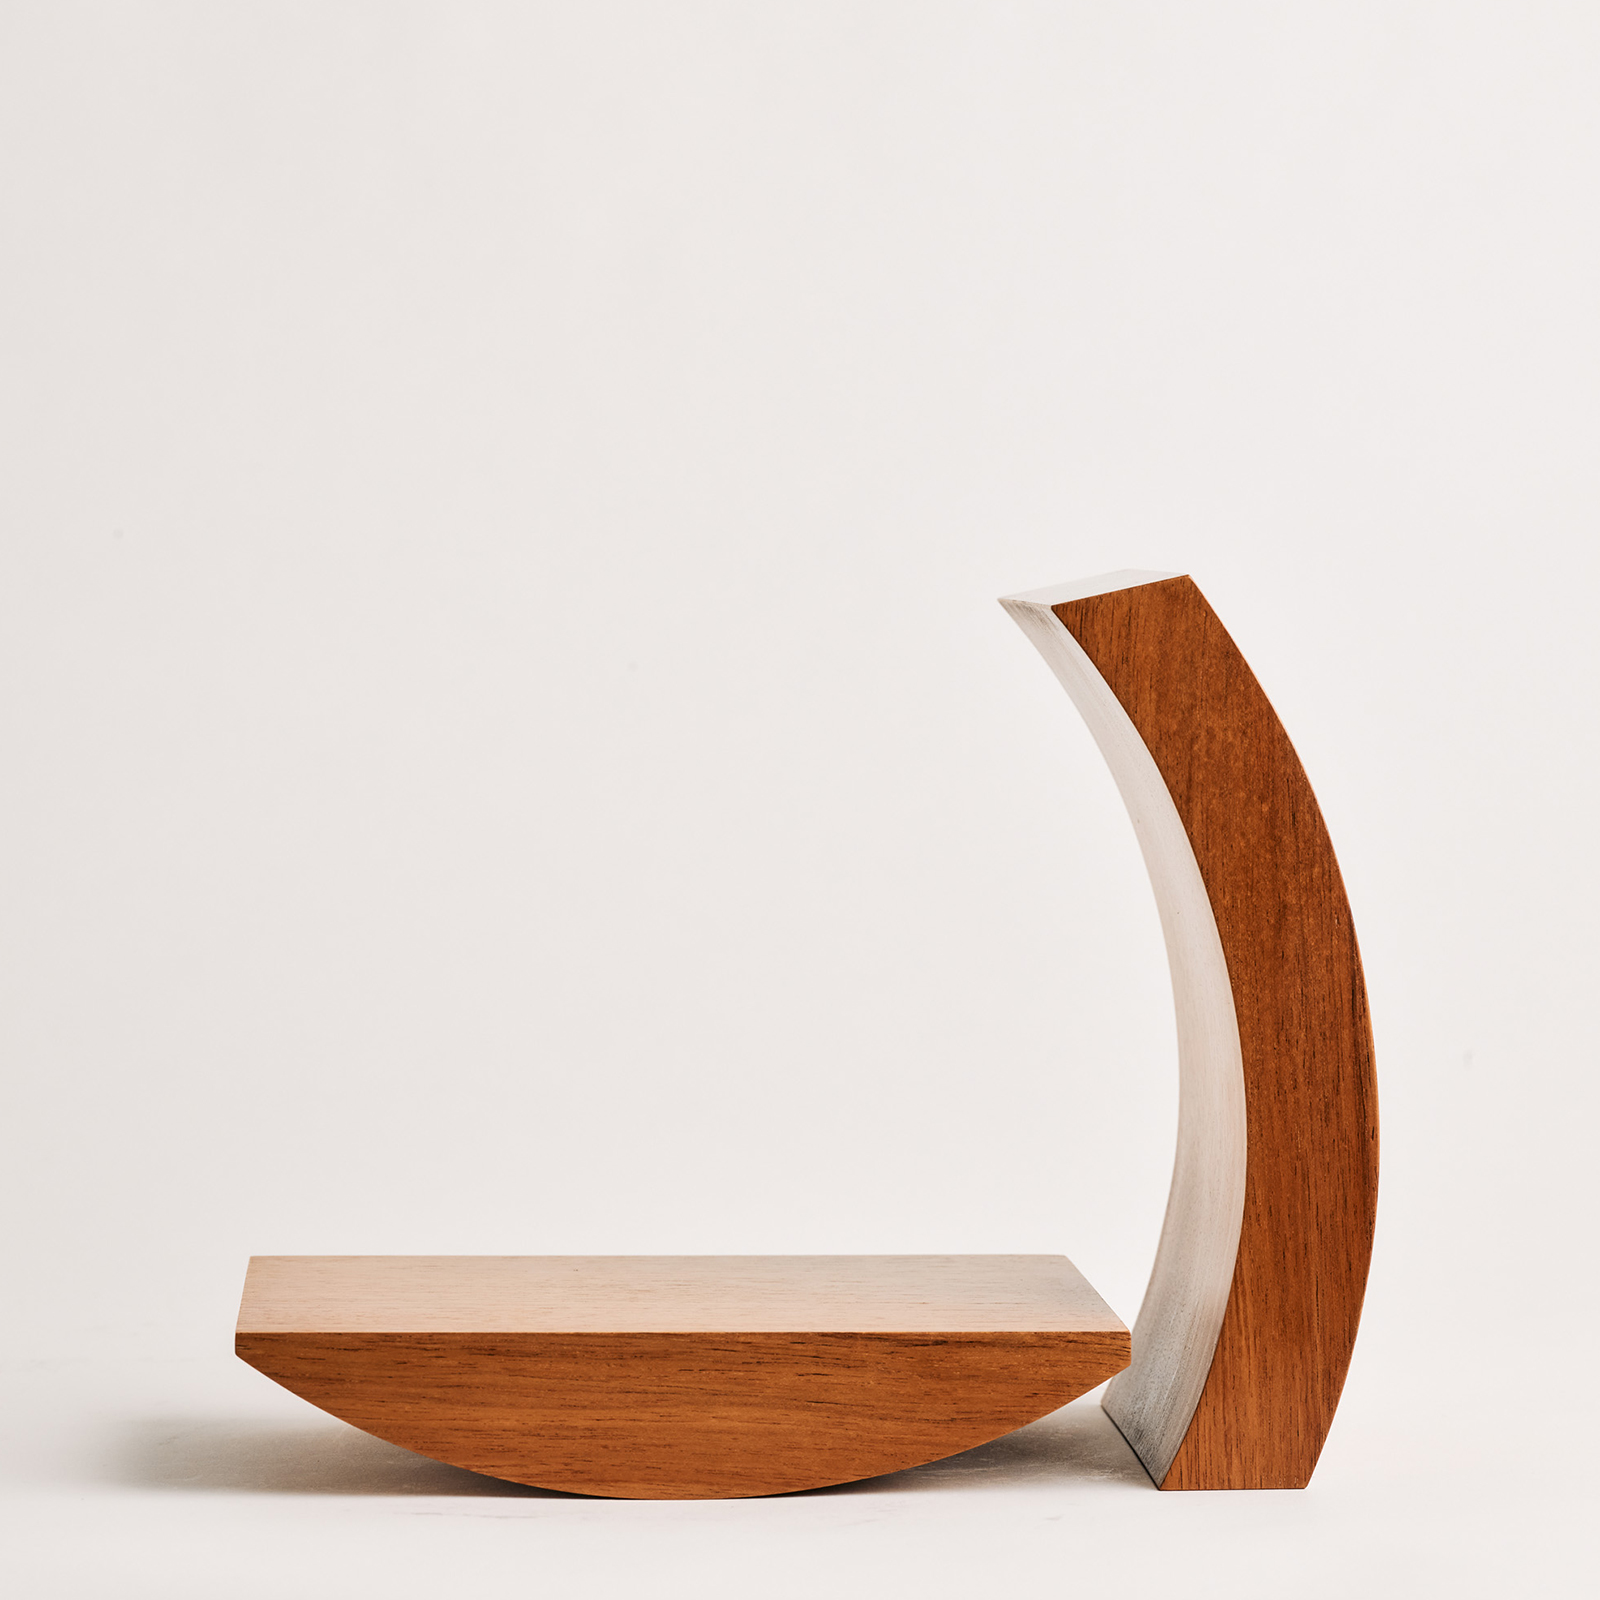 Timber Forms In Tasmanian Blackwood And Limited Edition By Zachary Frankel 4